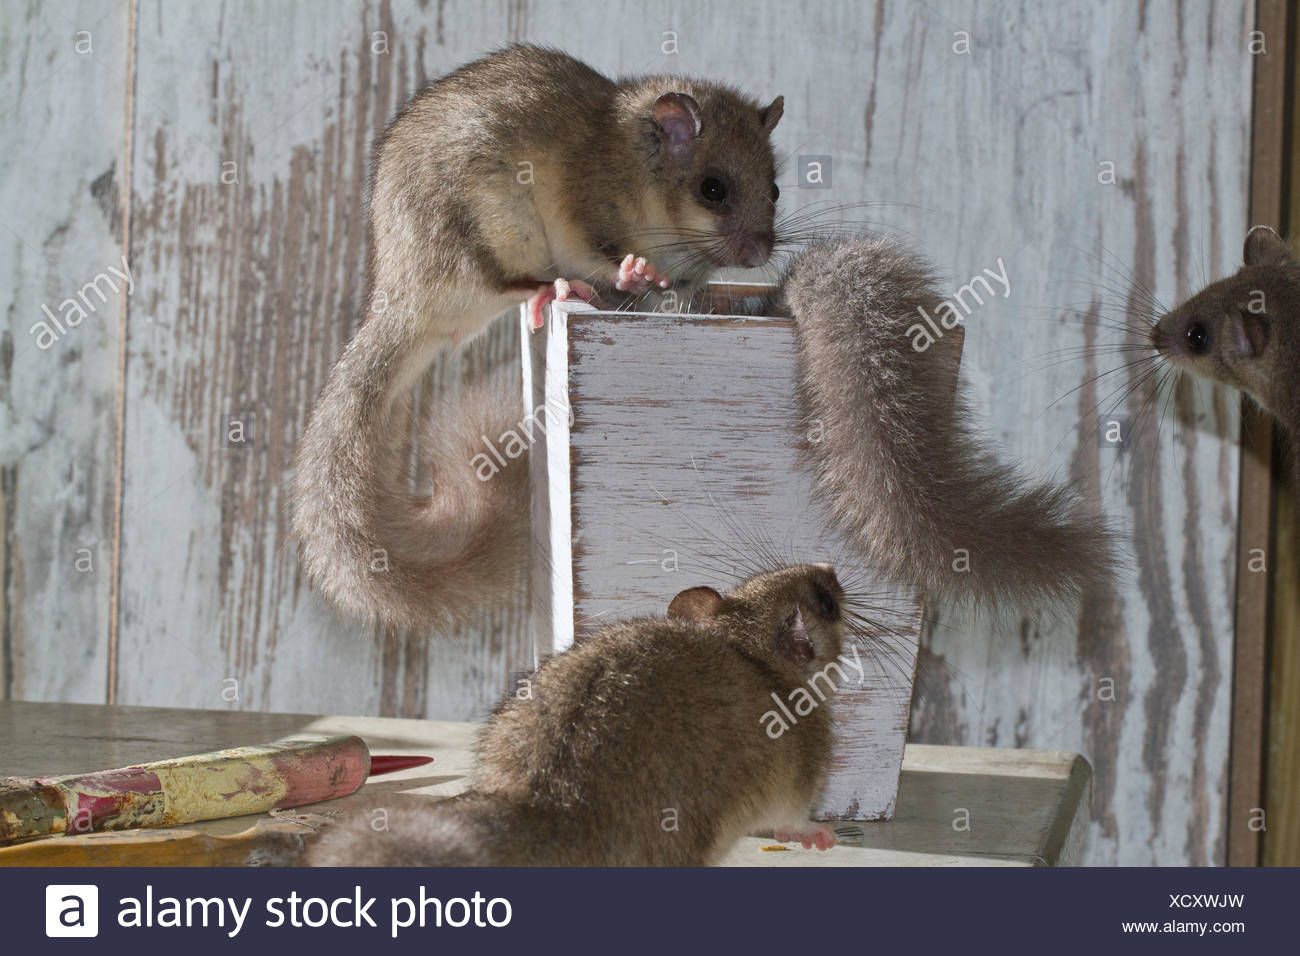 fat dormouse, edible dormouse (Glis glis) on table with paint brushes, Europe - Stock Image